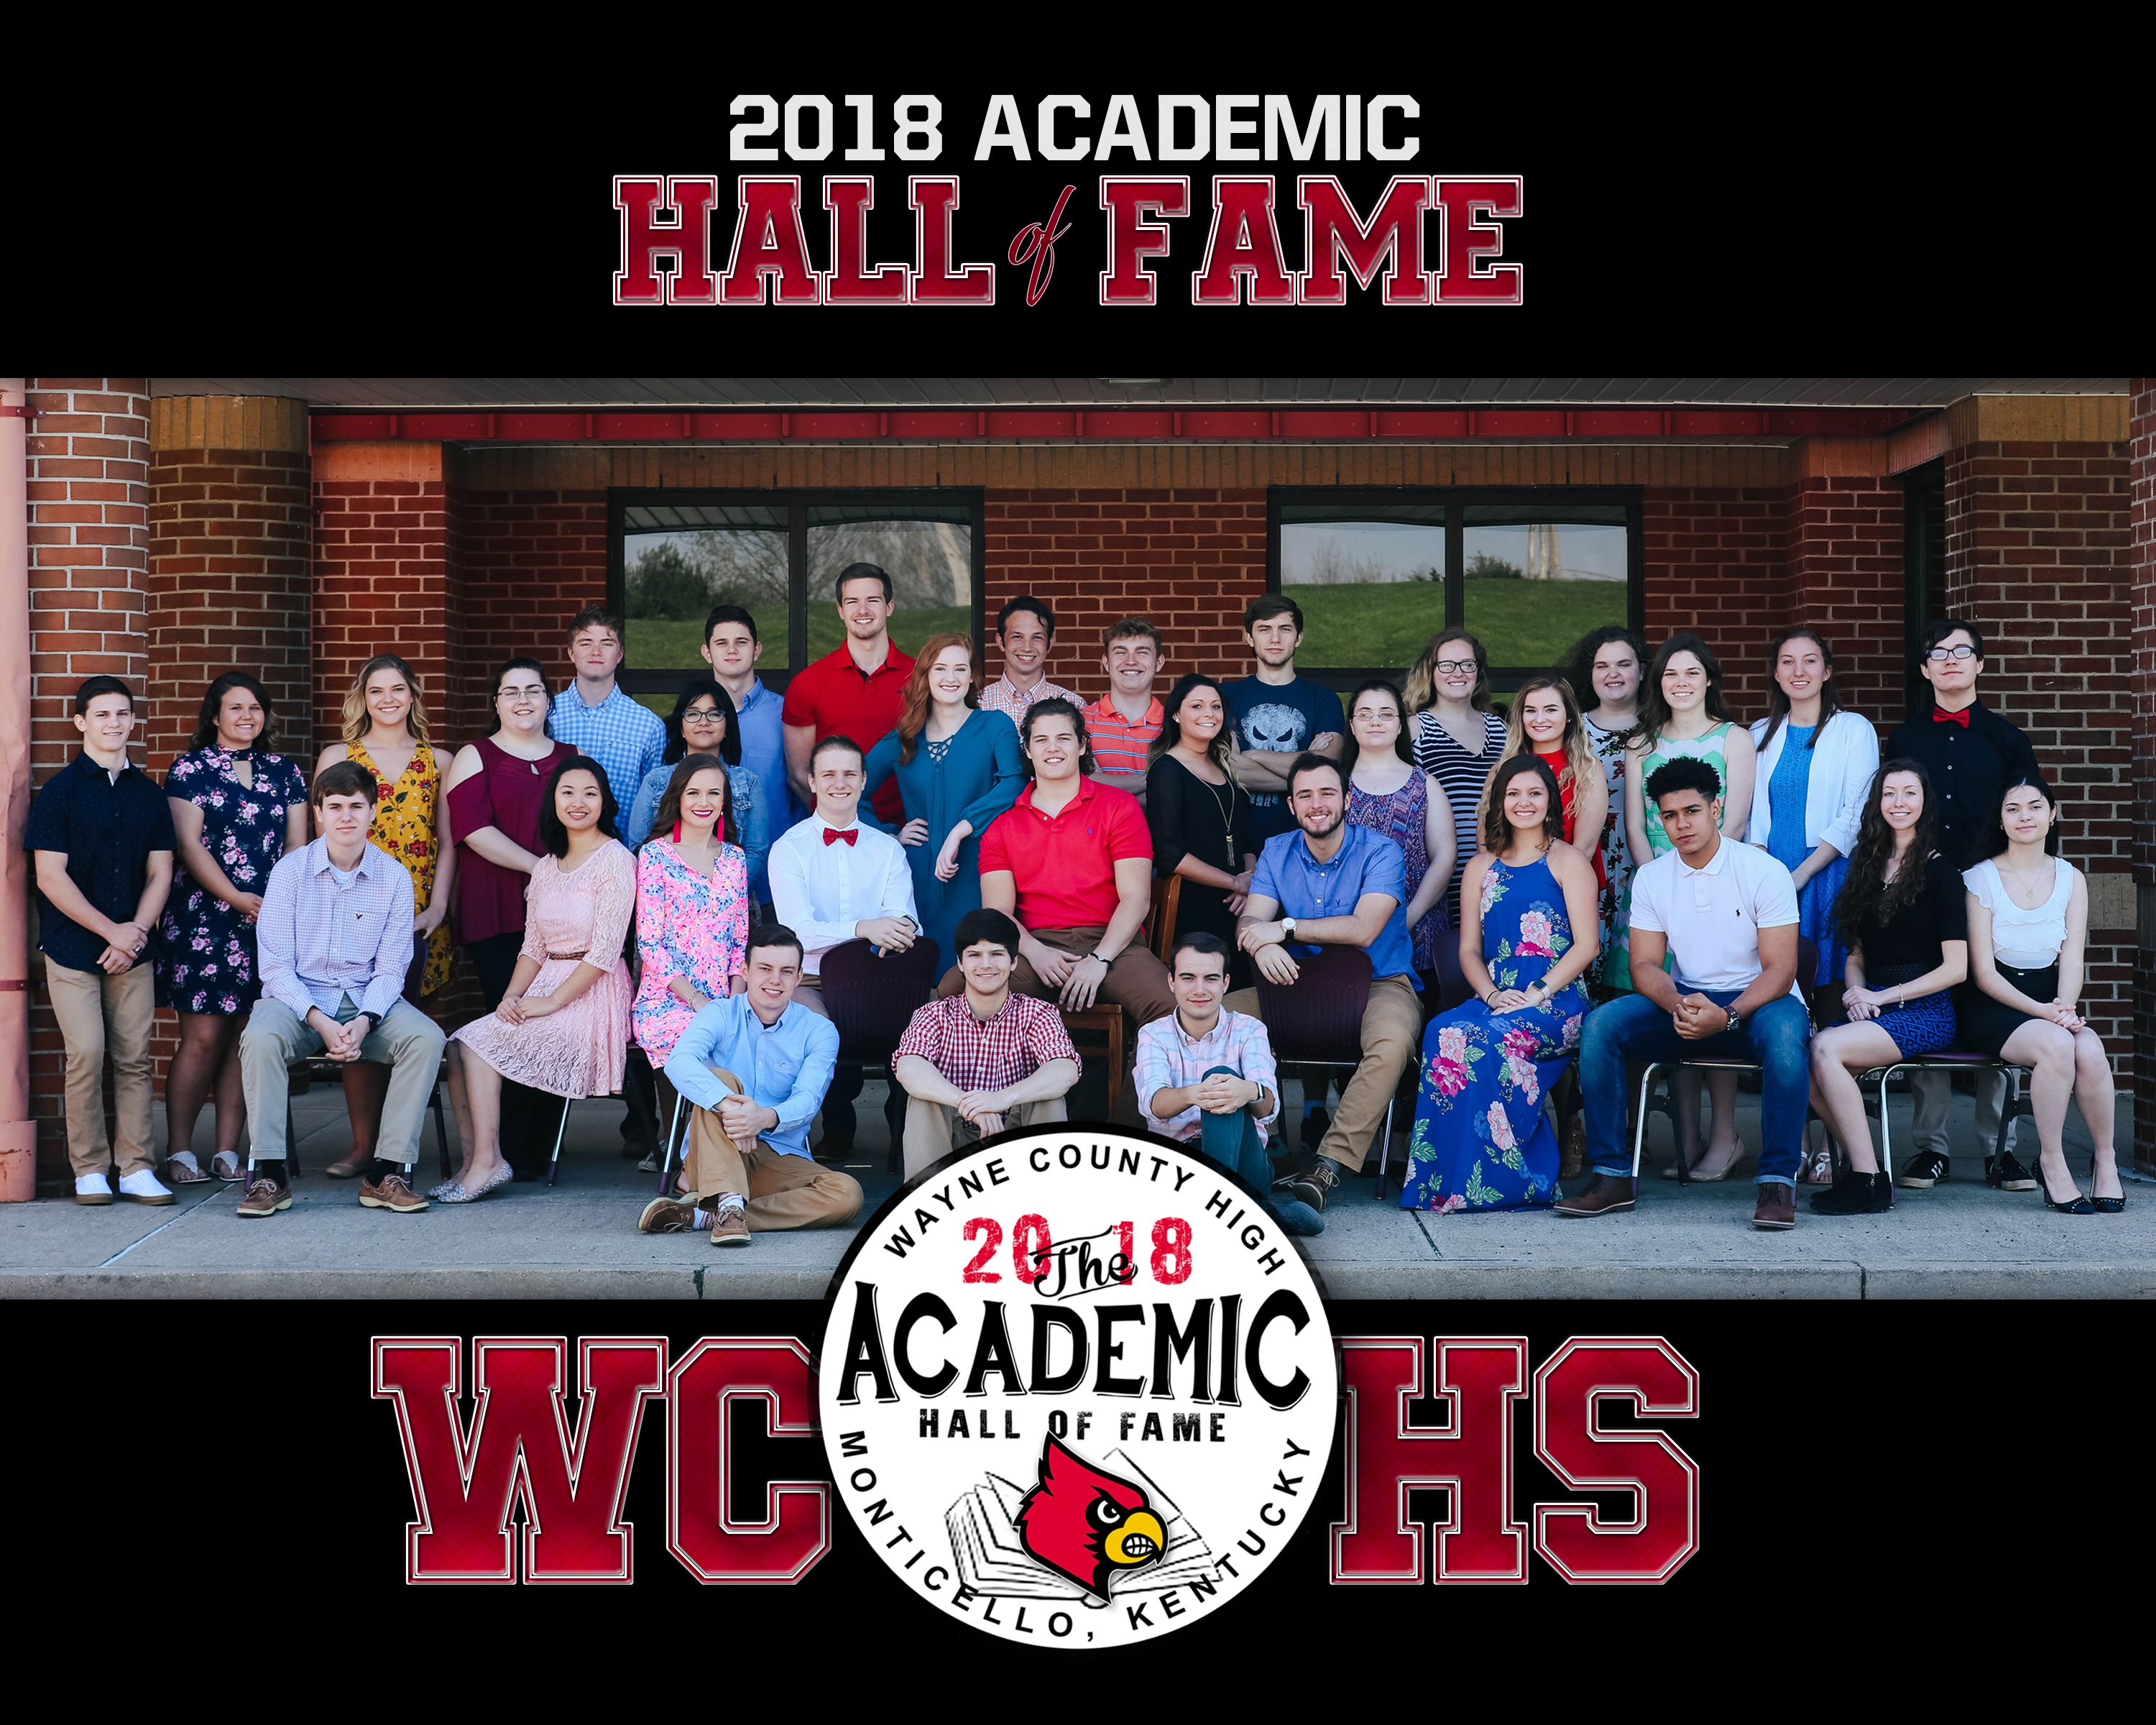 2018 academic hall of fame